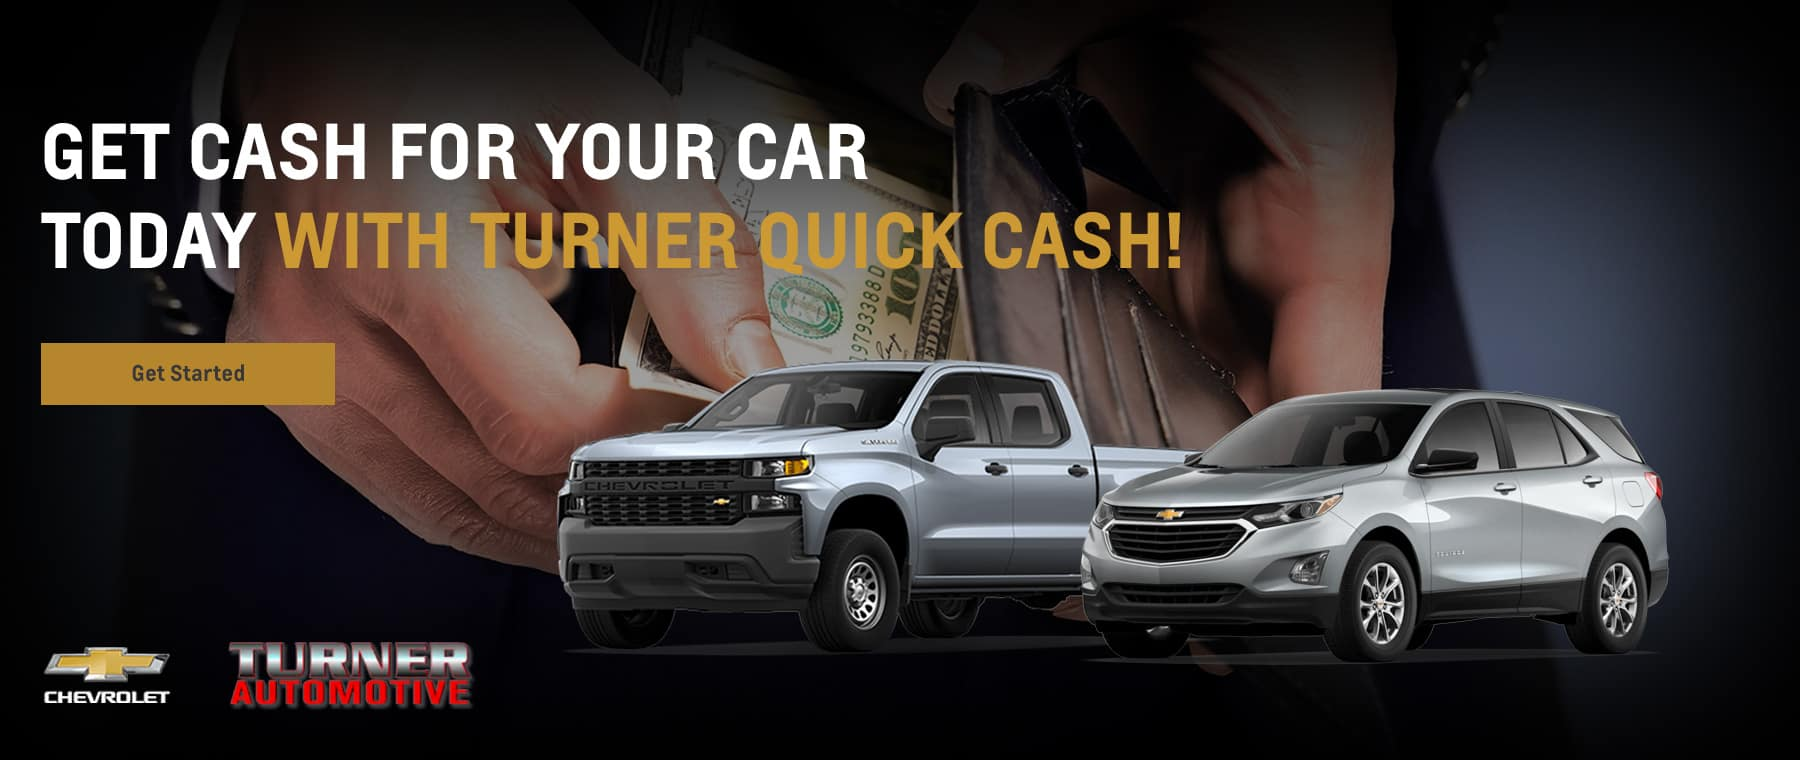 Get Cash for Your Car Today with Turner Quick Cash!